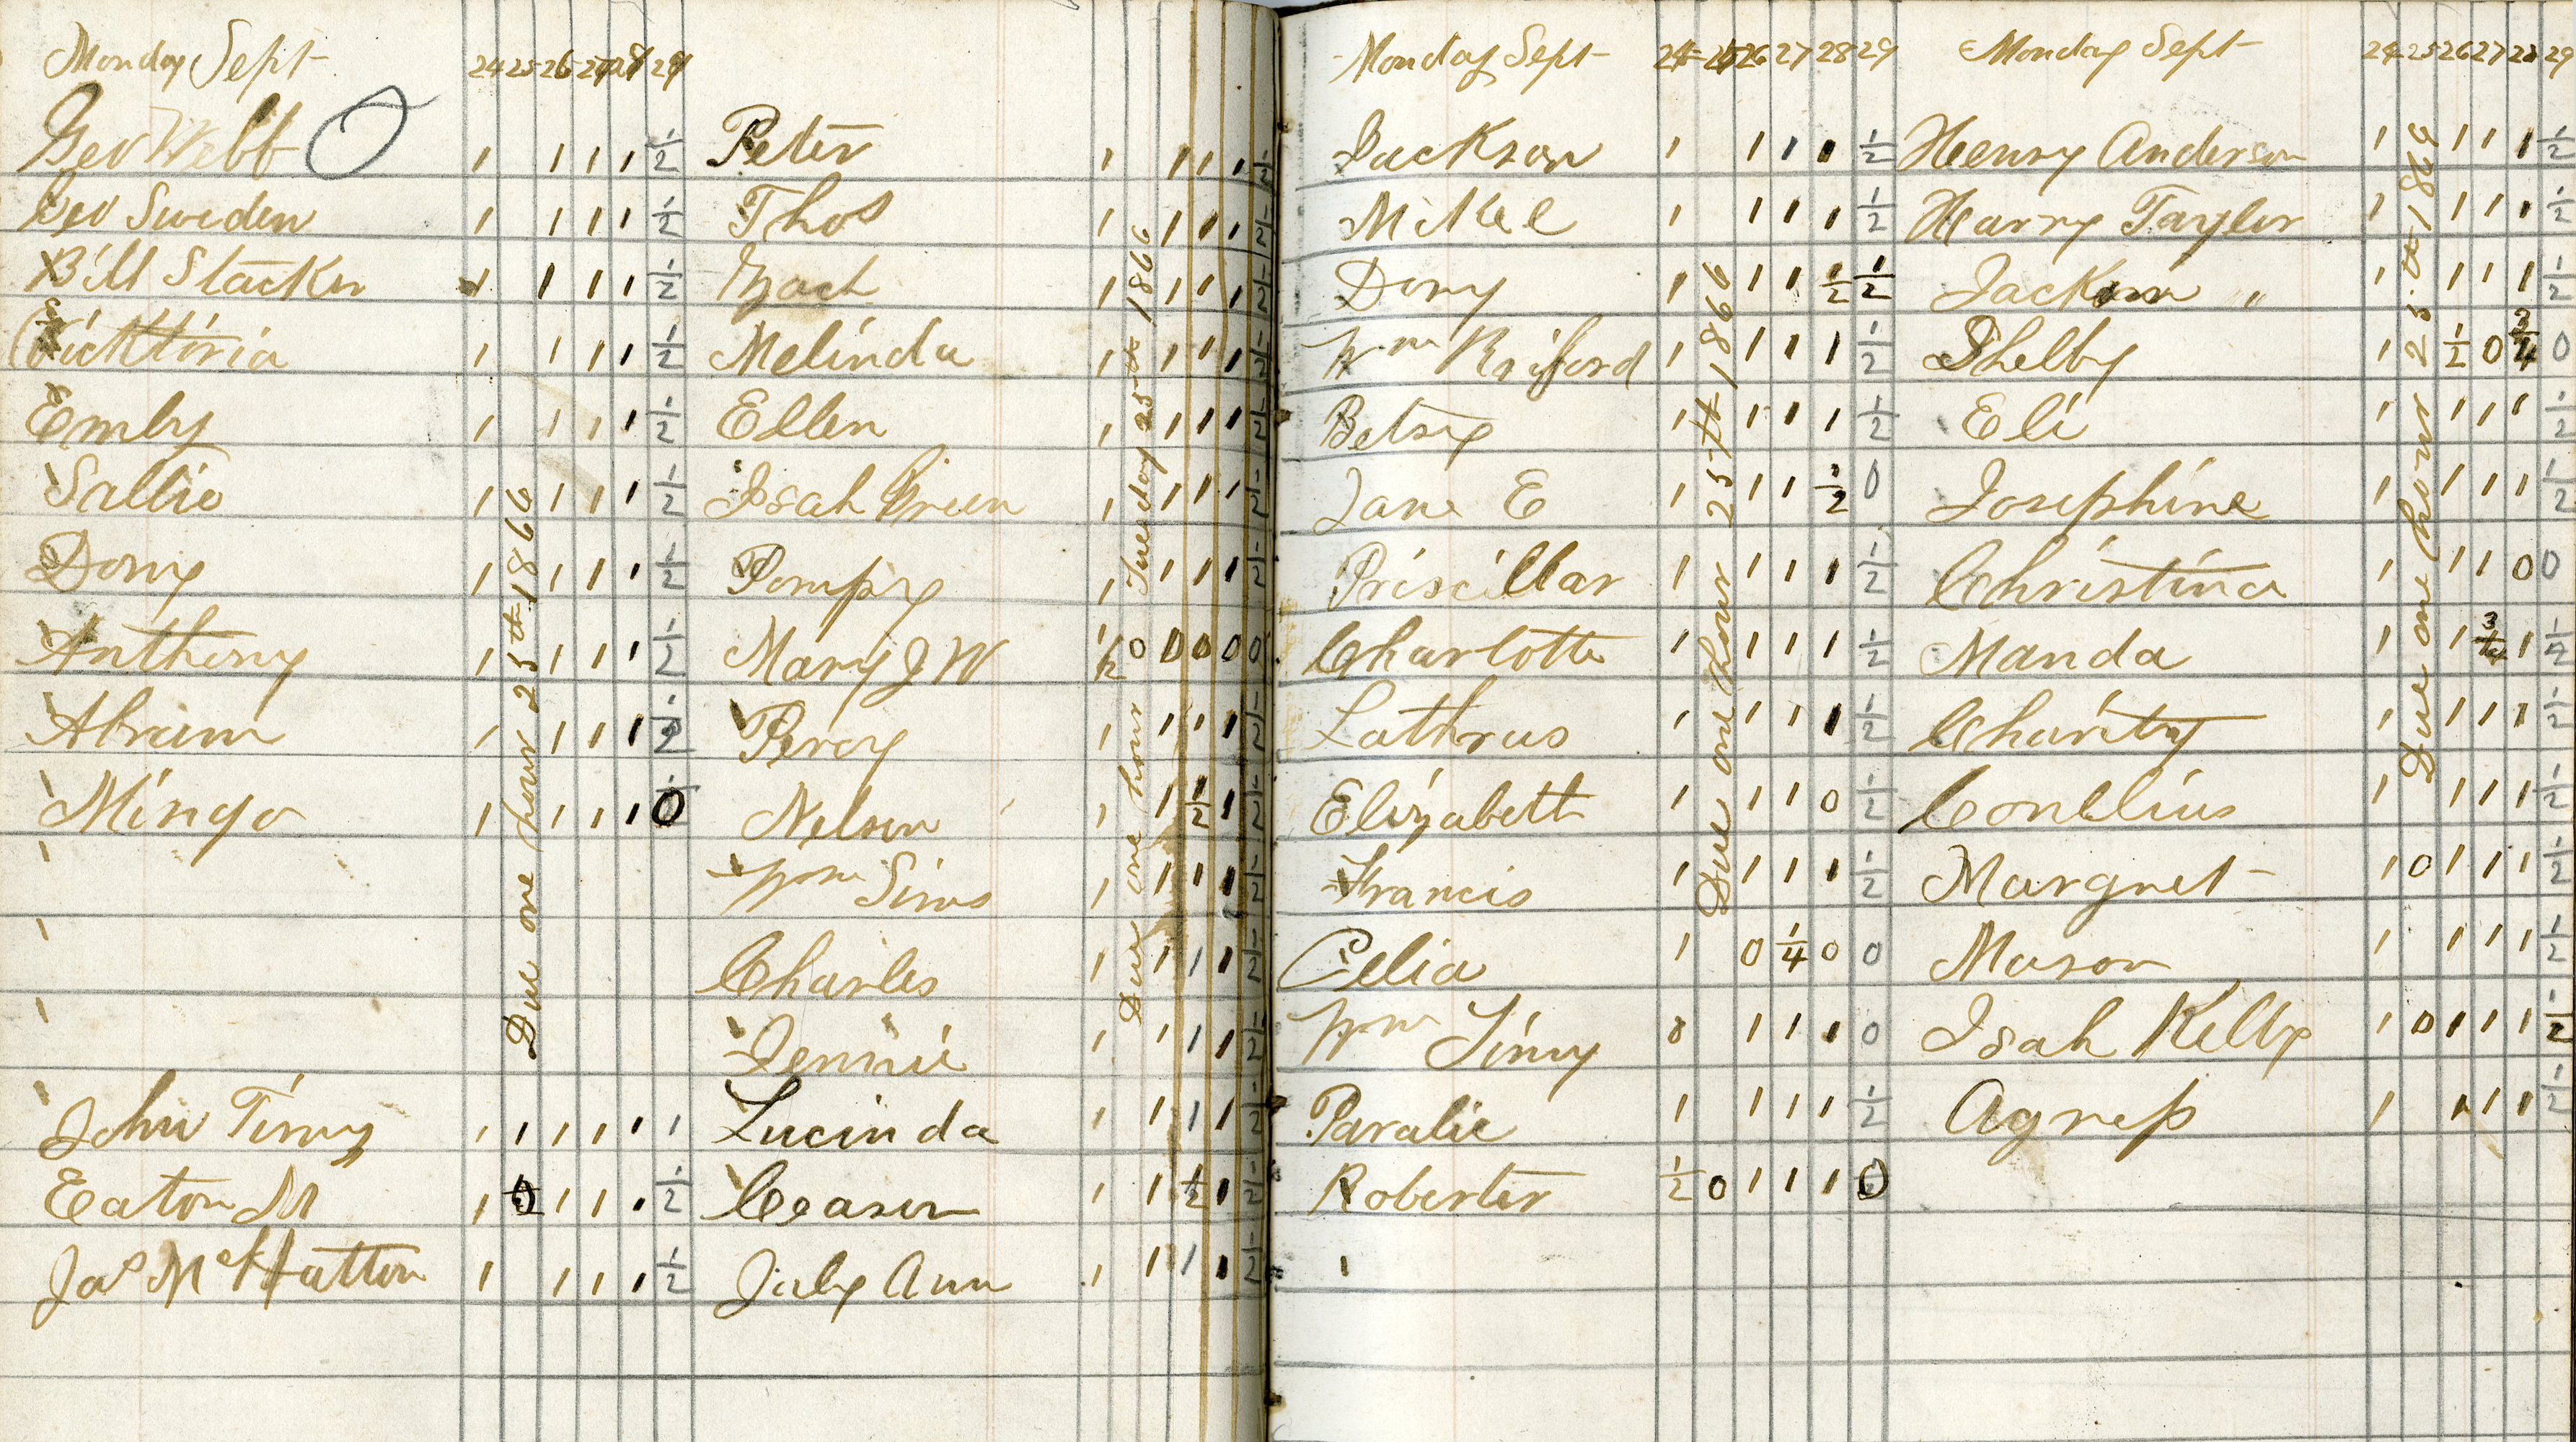 A tally of days worked by hands on Lammermoor Plantation, 1866. The number of hands listed (50) hints at the size of the plantation.